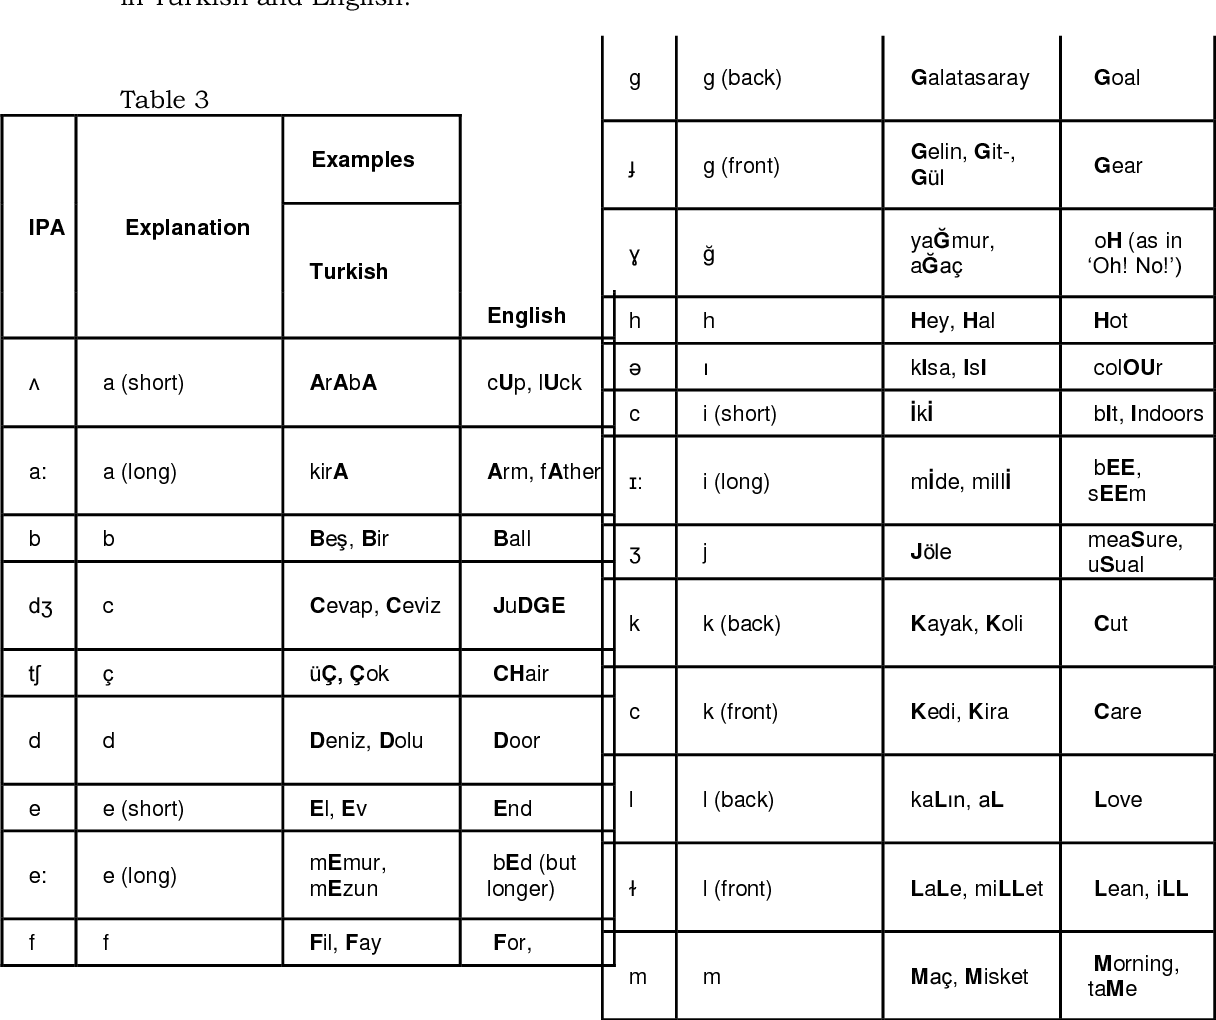 Pdf Transcription Of A 1 A 2 Level Turkish Words In The Ipa International Phonetic Alphabet For Learners Of Tfl Turkish As A Foreign Language 1 Semantic Scholar